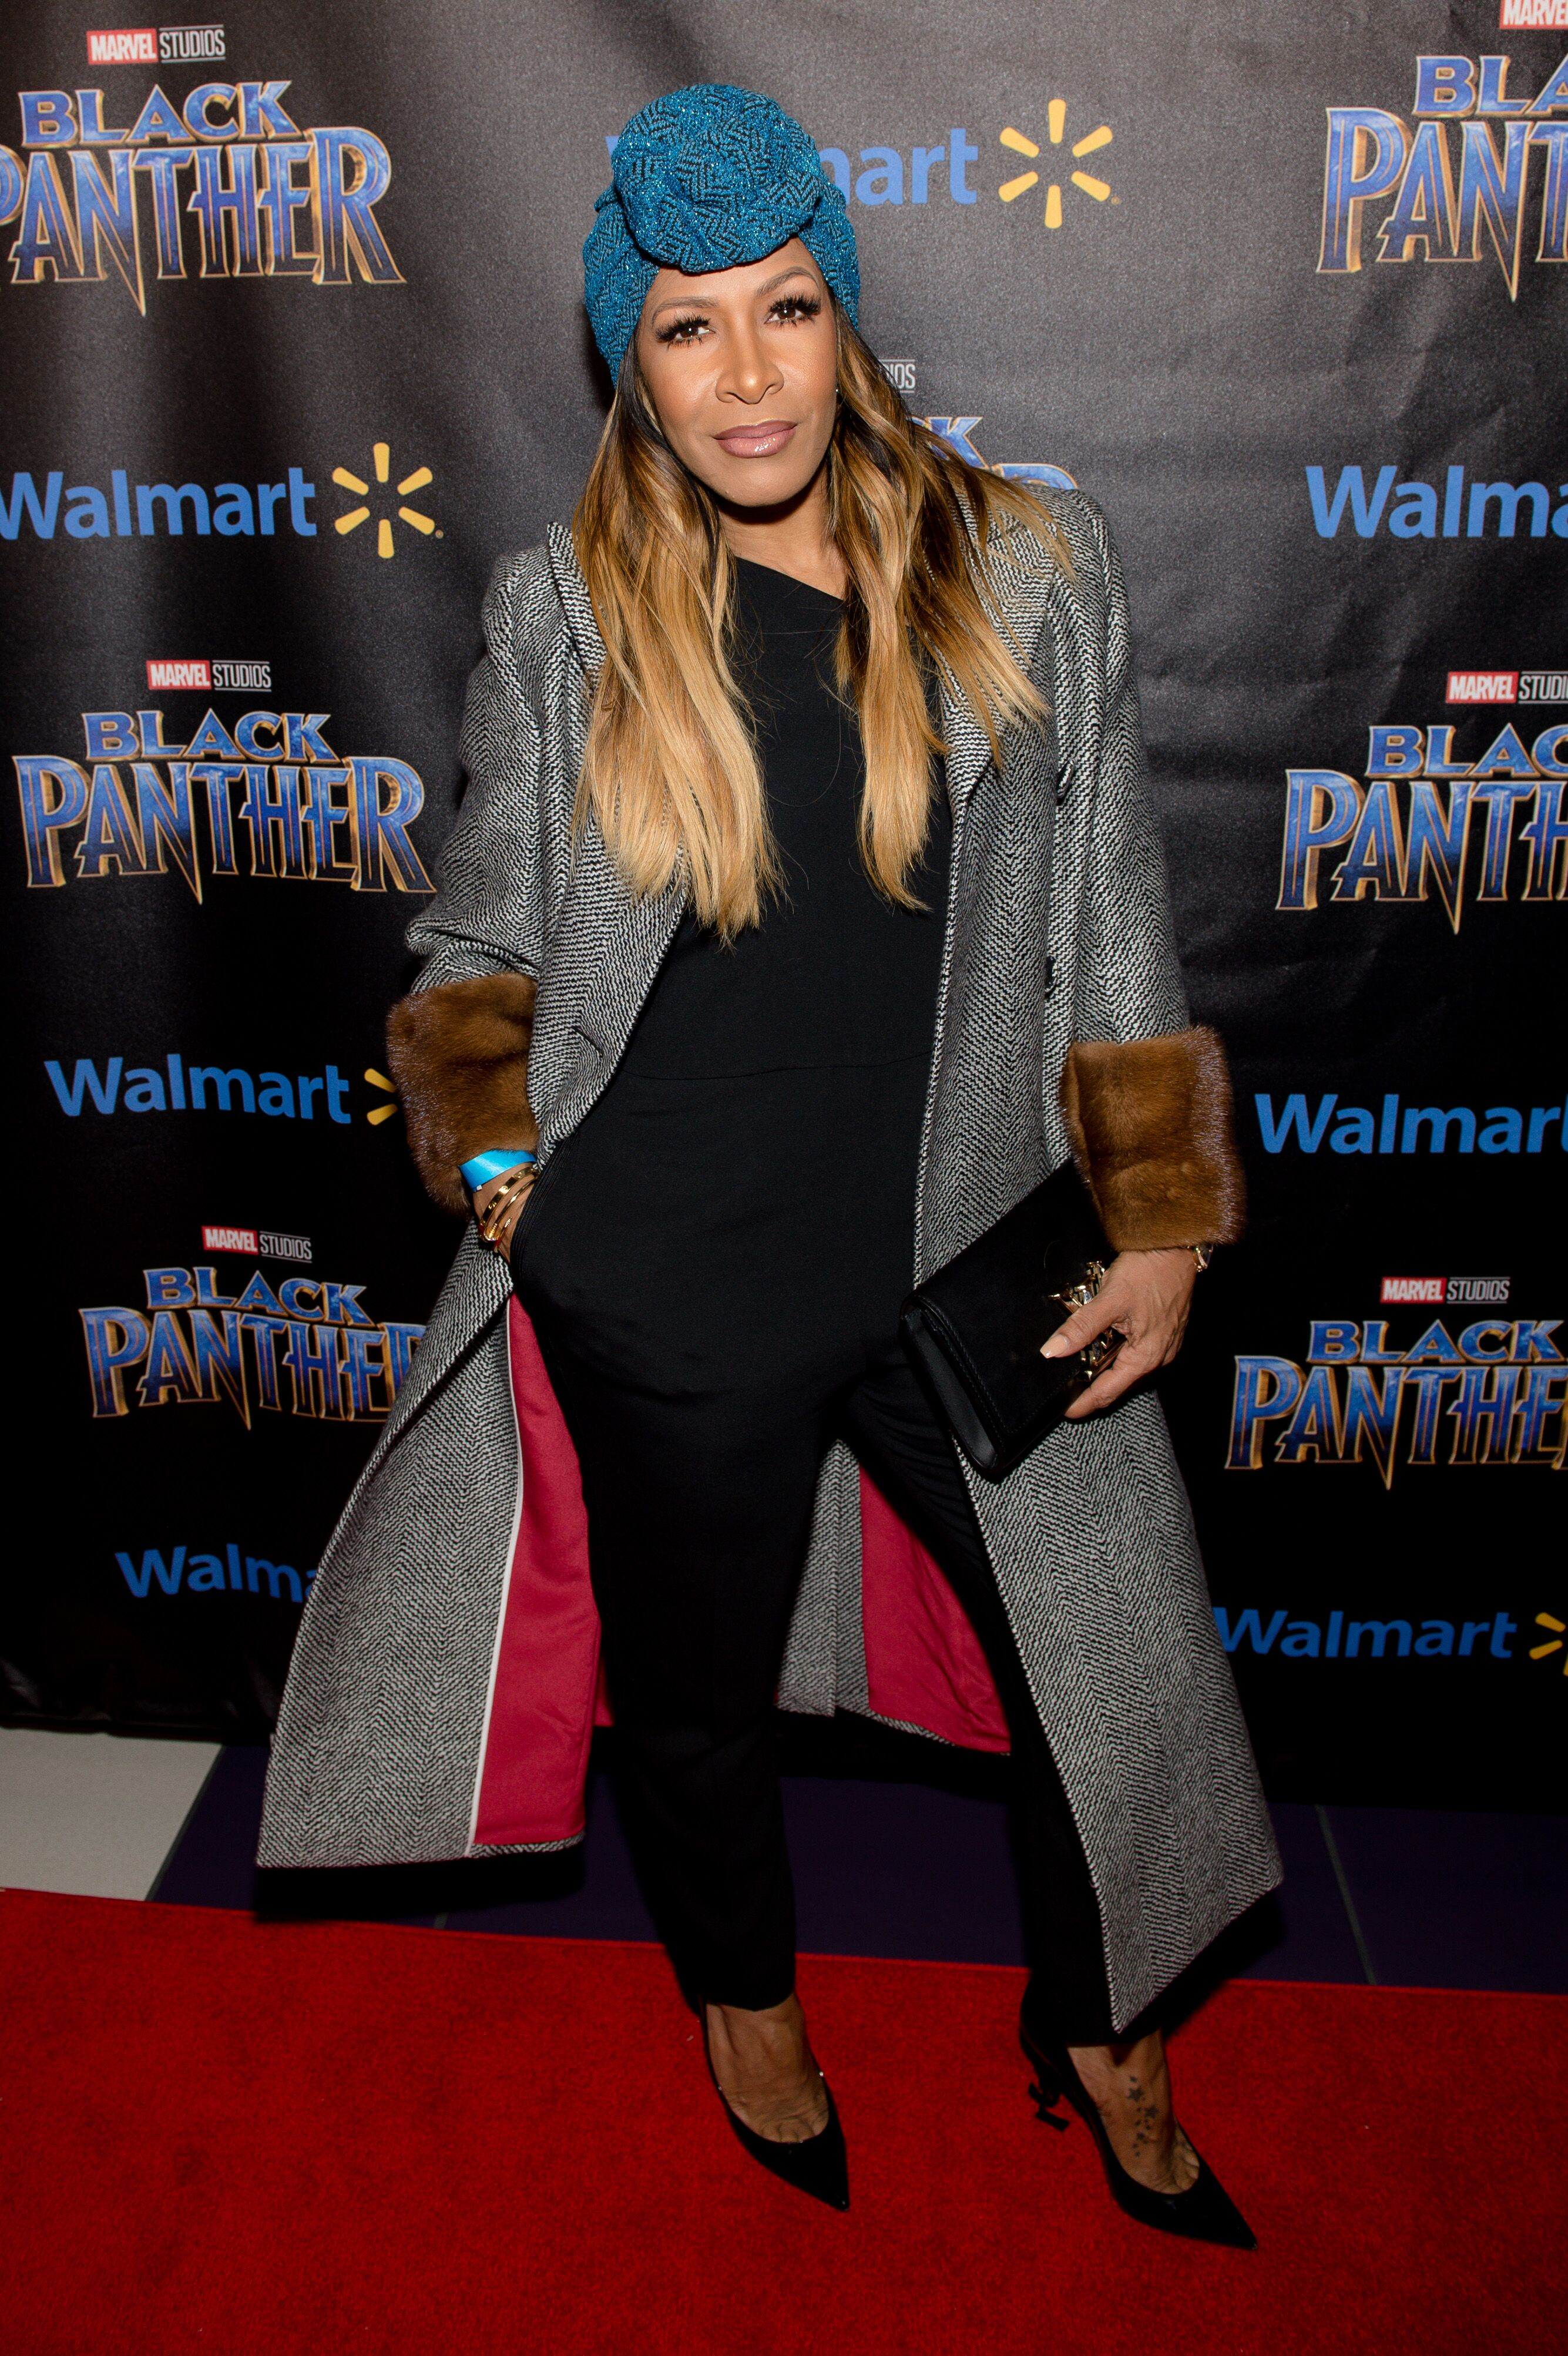 """Sheree Whitfield at the """"Black Panther"""" premiere in 2019/ Source: Getty Images"""